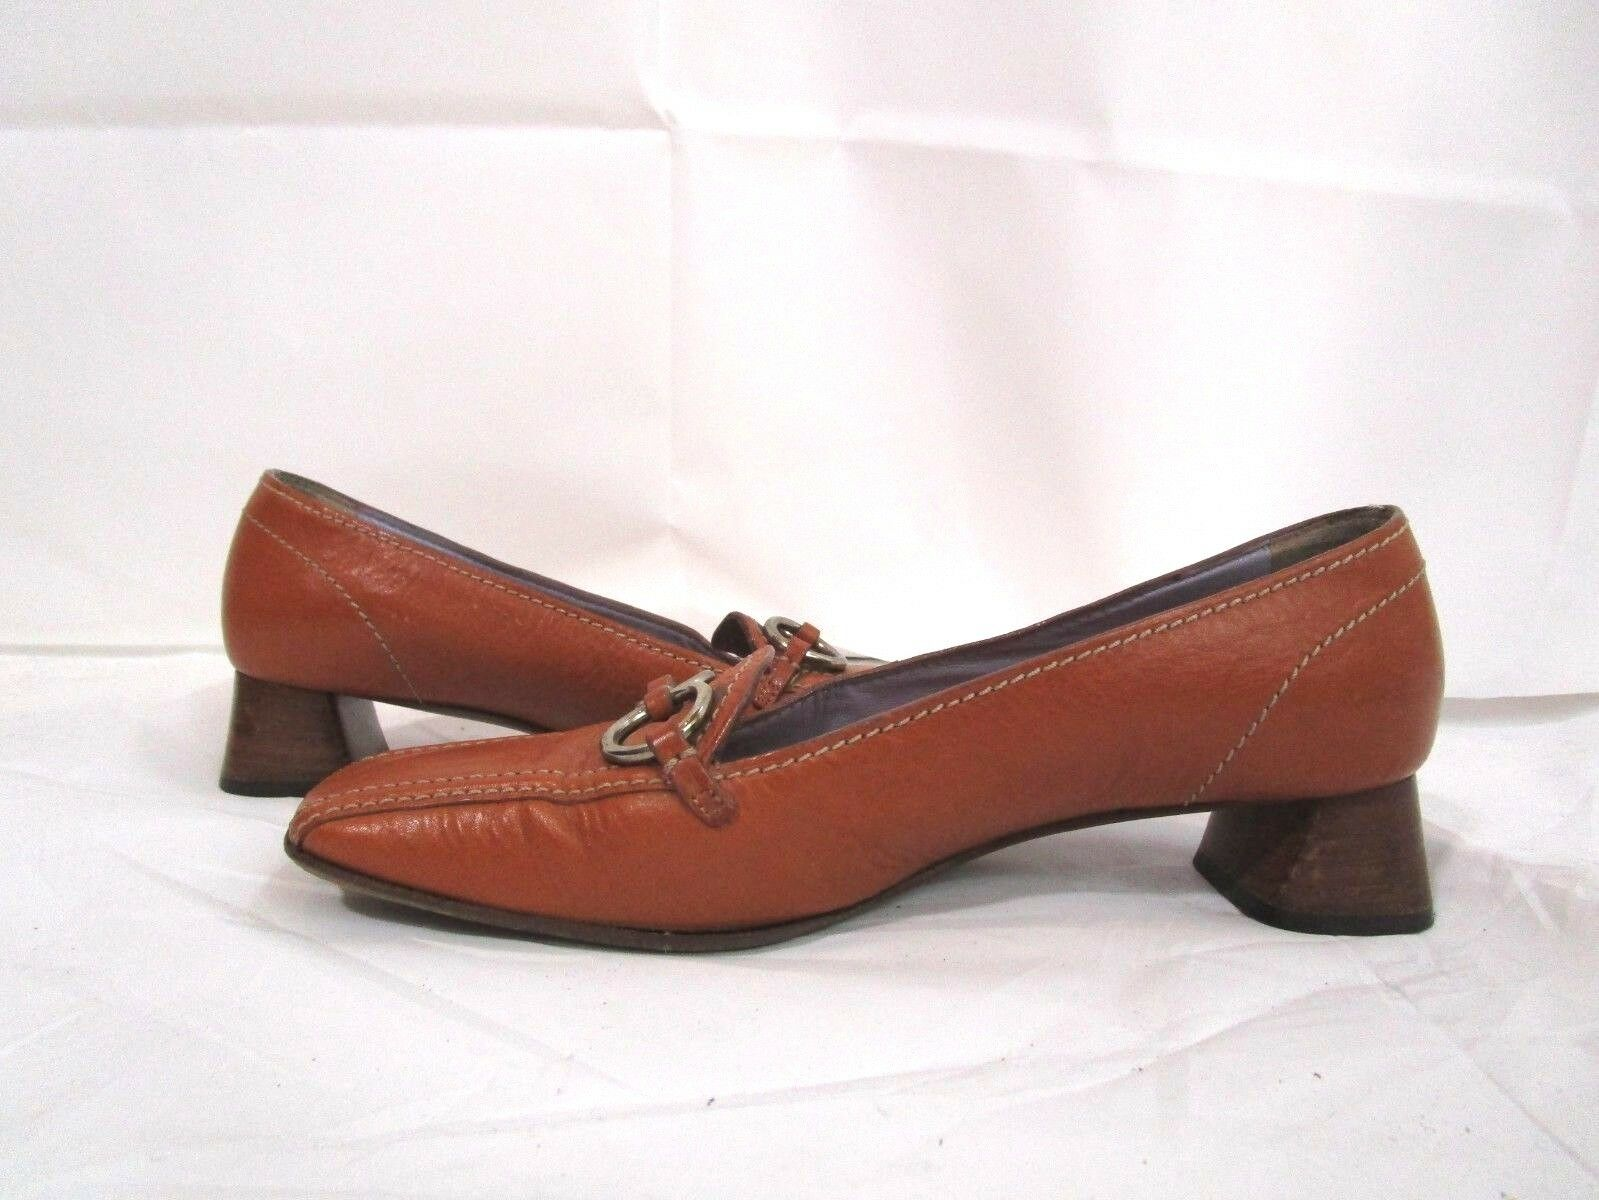 Prada Block Heels Light Braun Pumps Leder  Pumps Braun Loafer  39/9 e5be40